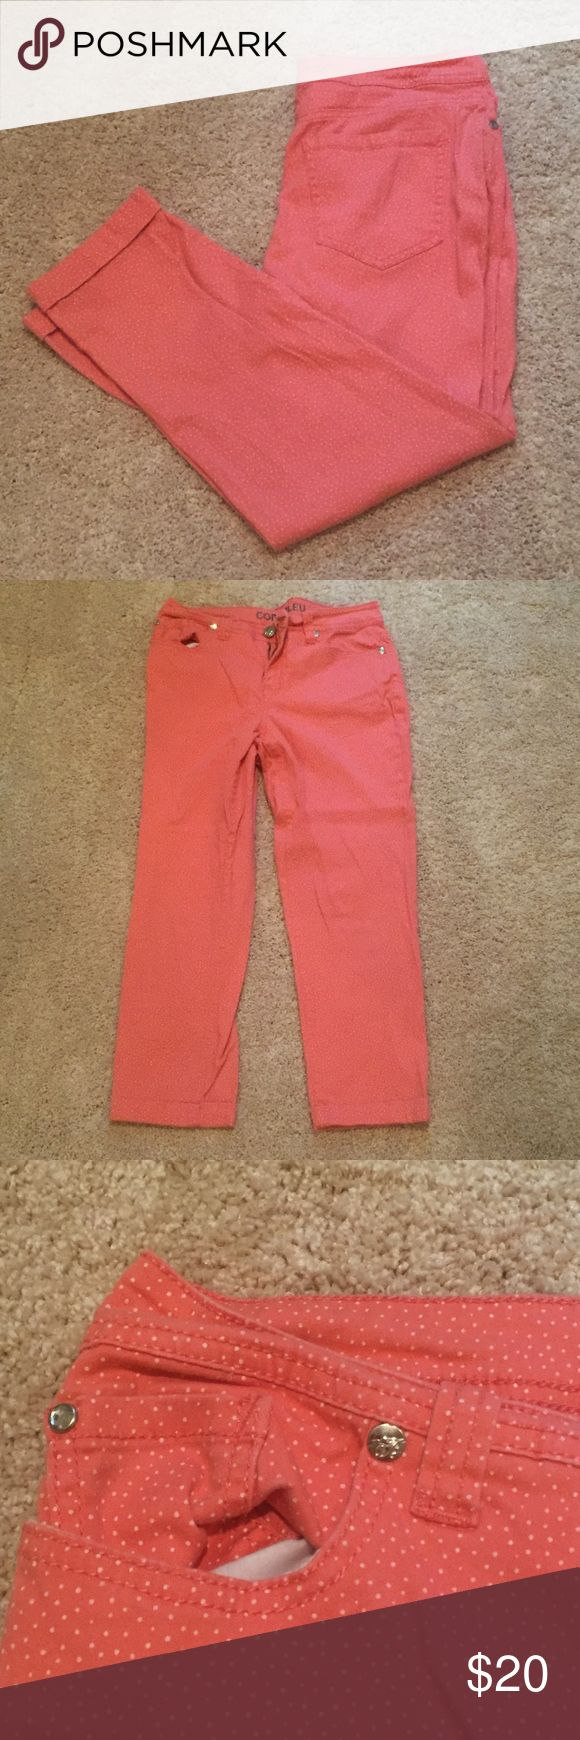 Coral Capri Pants with White Polka Dots Feminine and flattering coral capri pants with white Polka Dots. Front zipper and button, front and back pockets. Cuffed ankle. Gently worn with no blemishes or damages! I'm happy to consider offers. Code Bleu Pants Capris